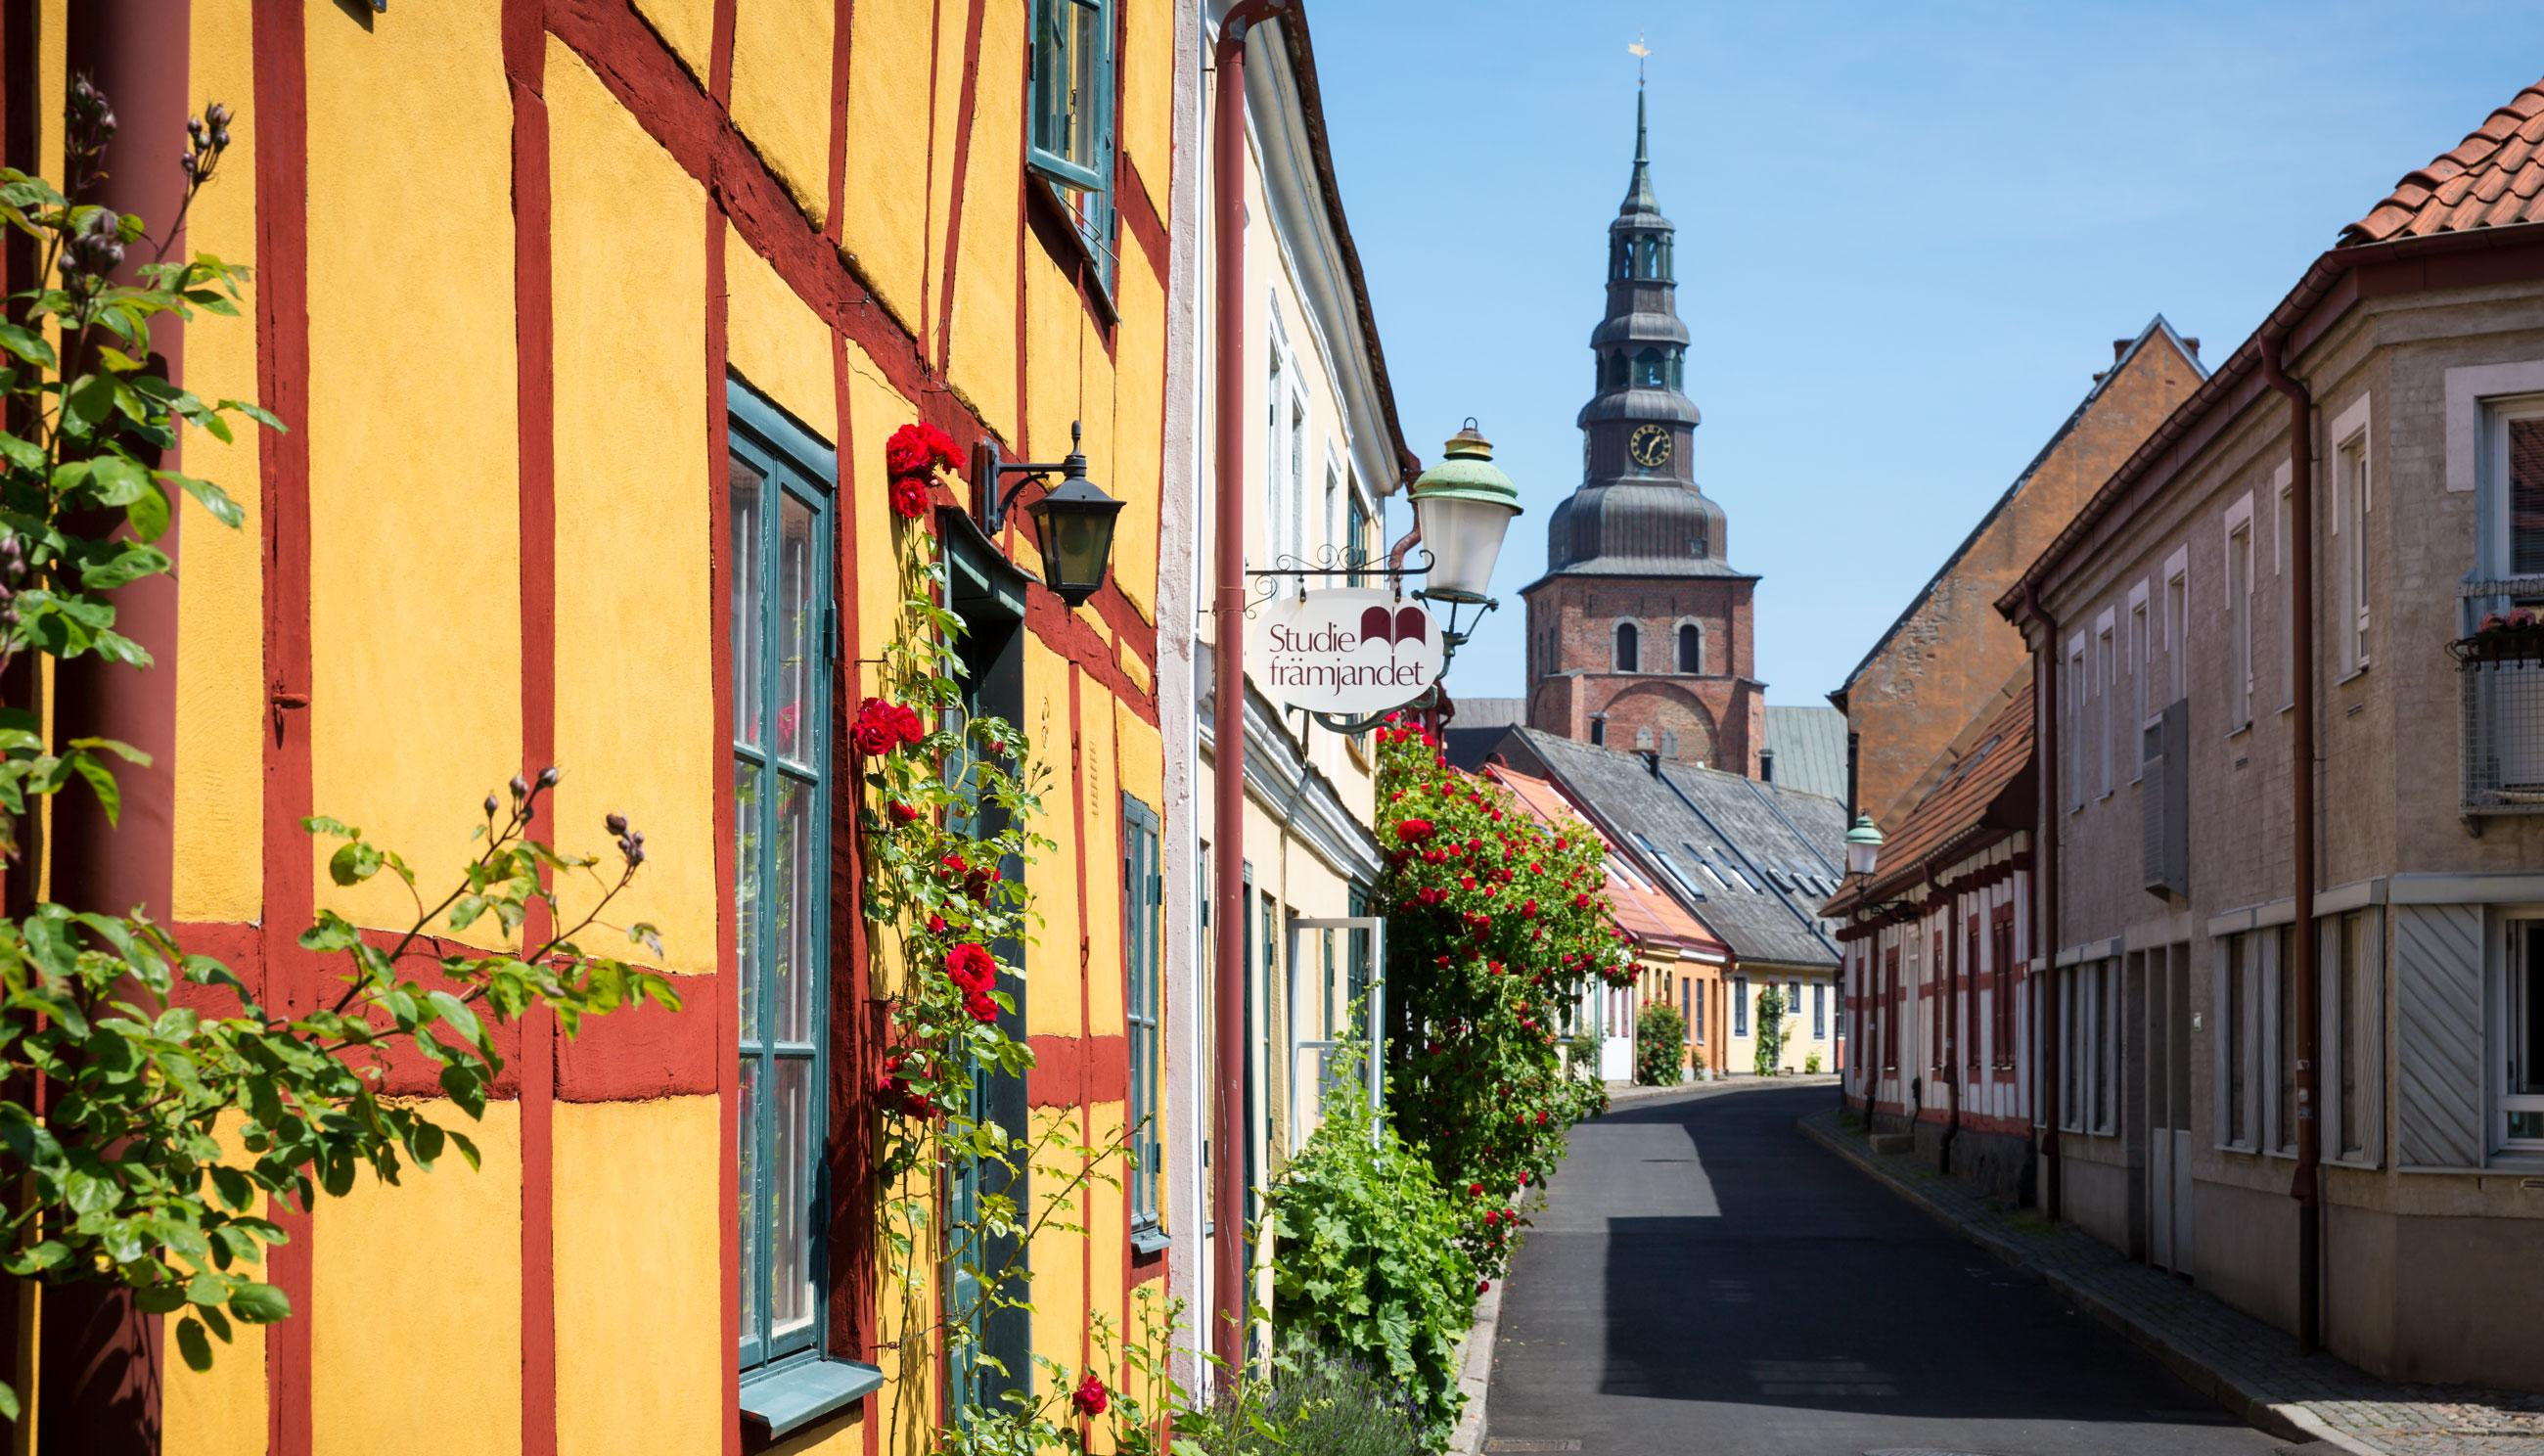 Streets of Ystad